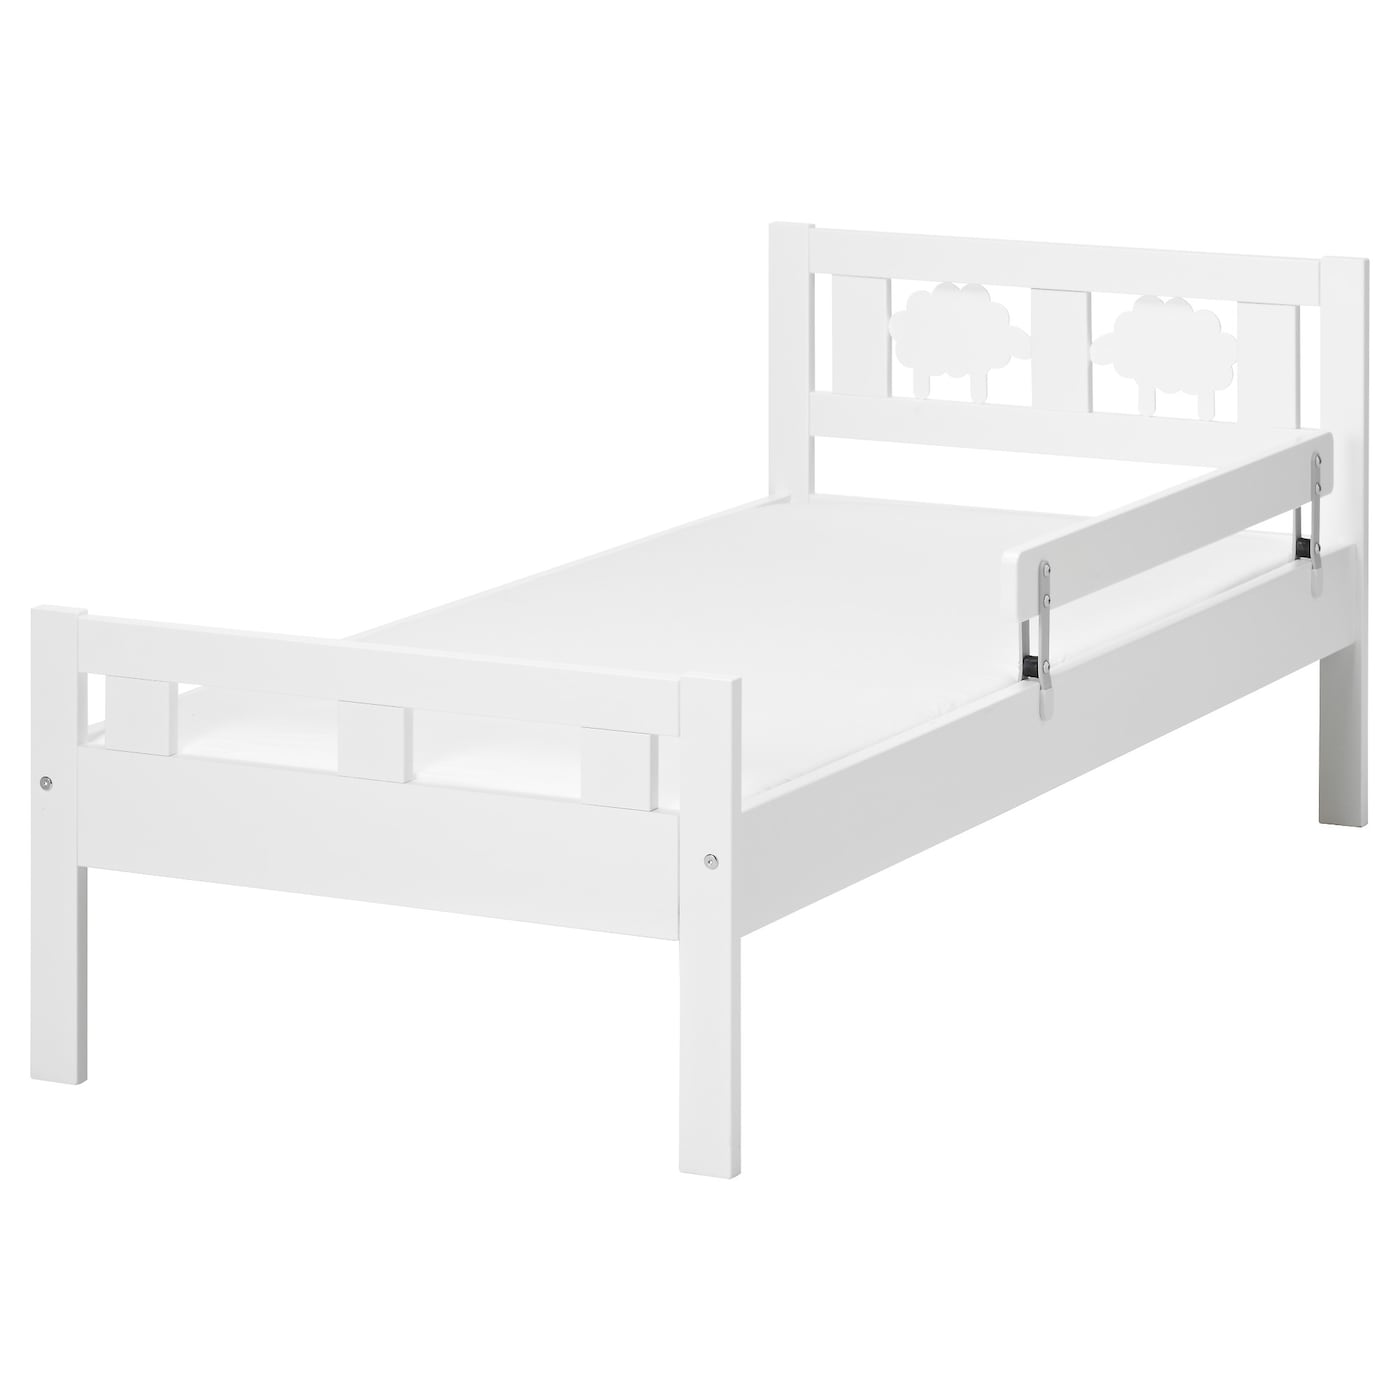 Kritter bed frame with slatted bed base white 70x160 cm ikea for Ikea mattress frame